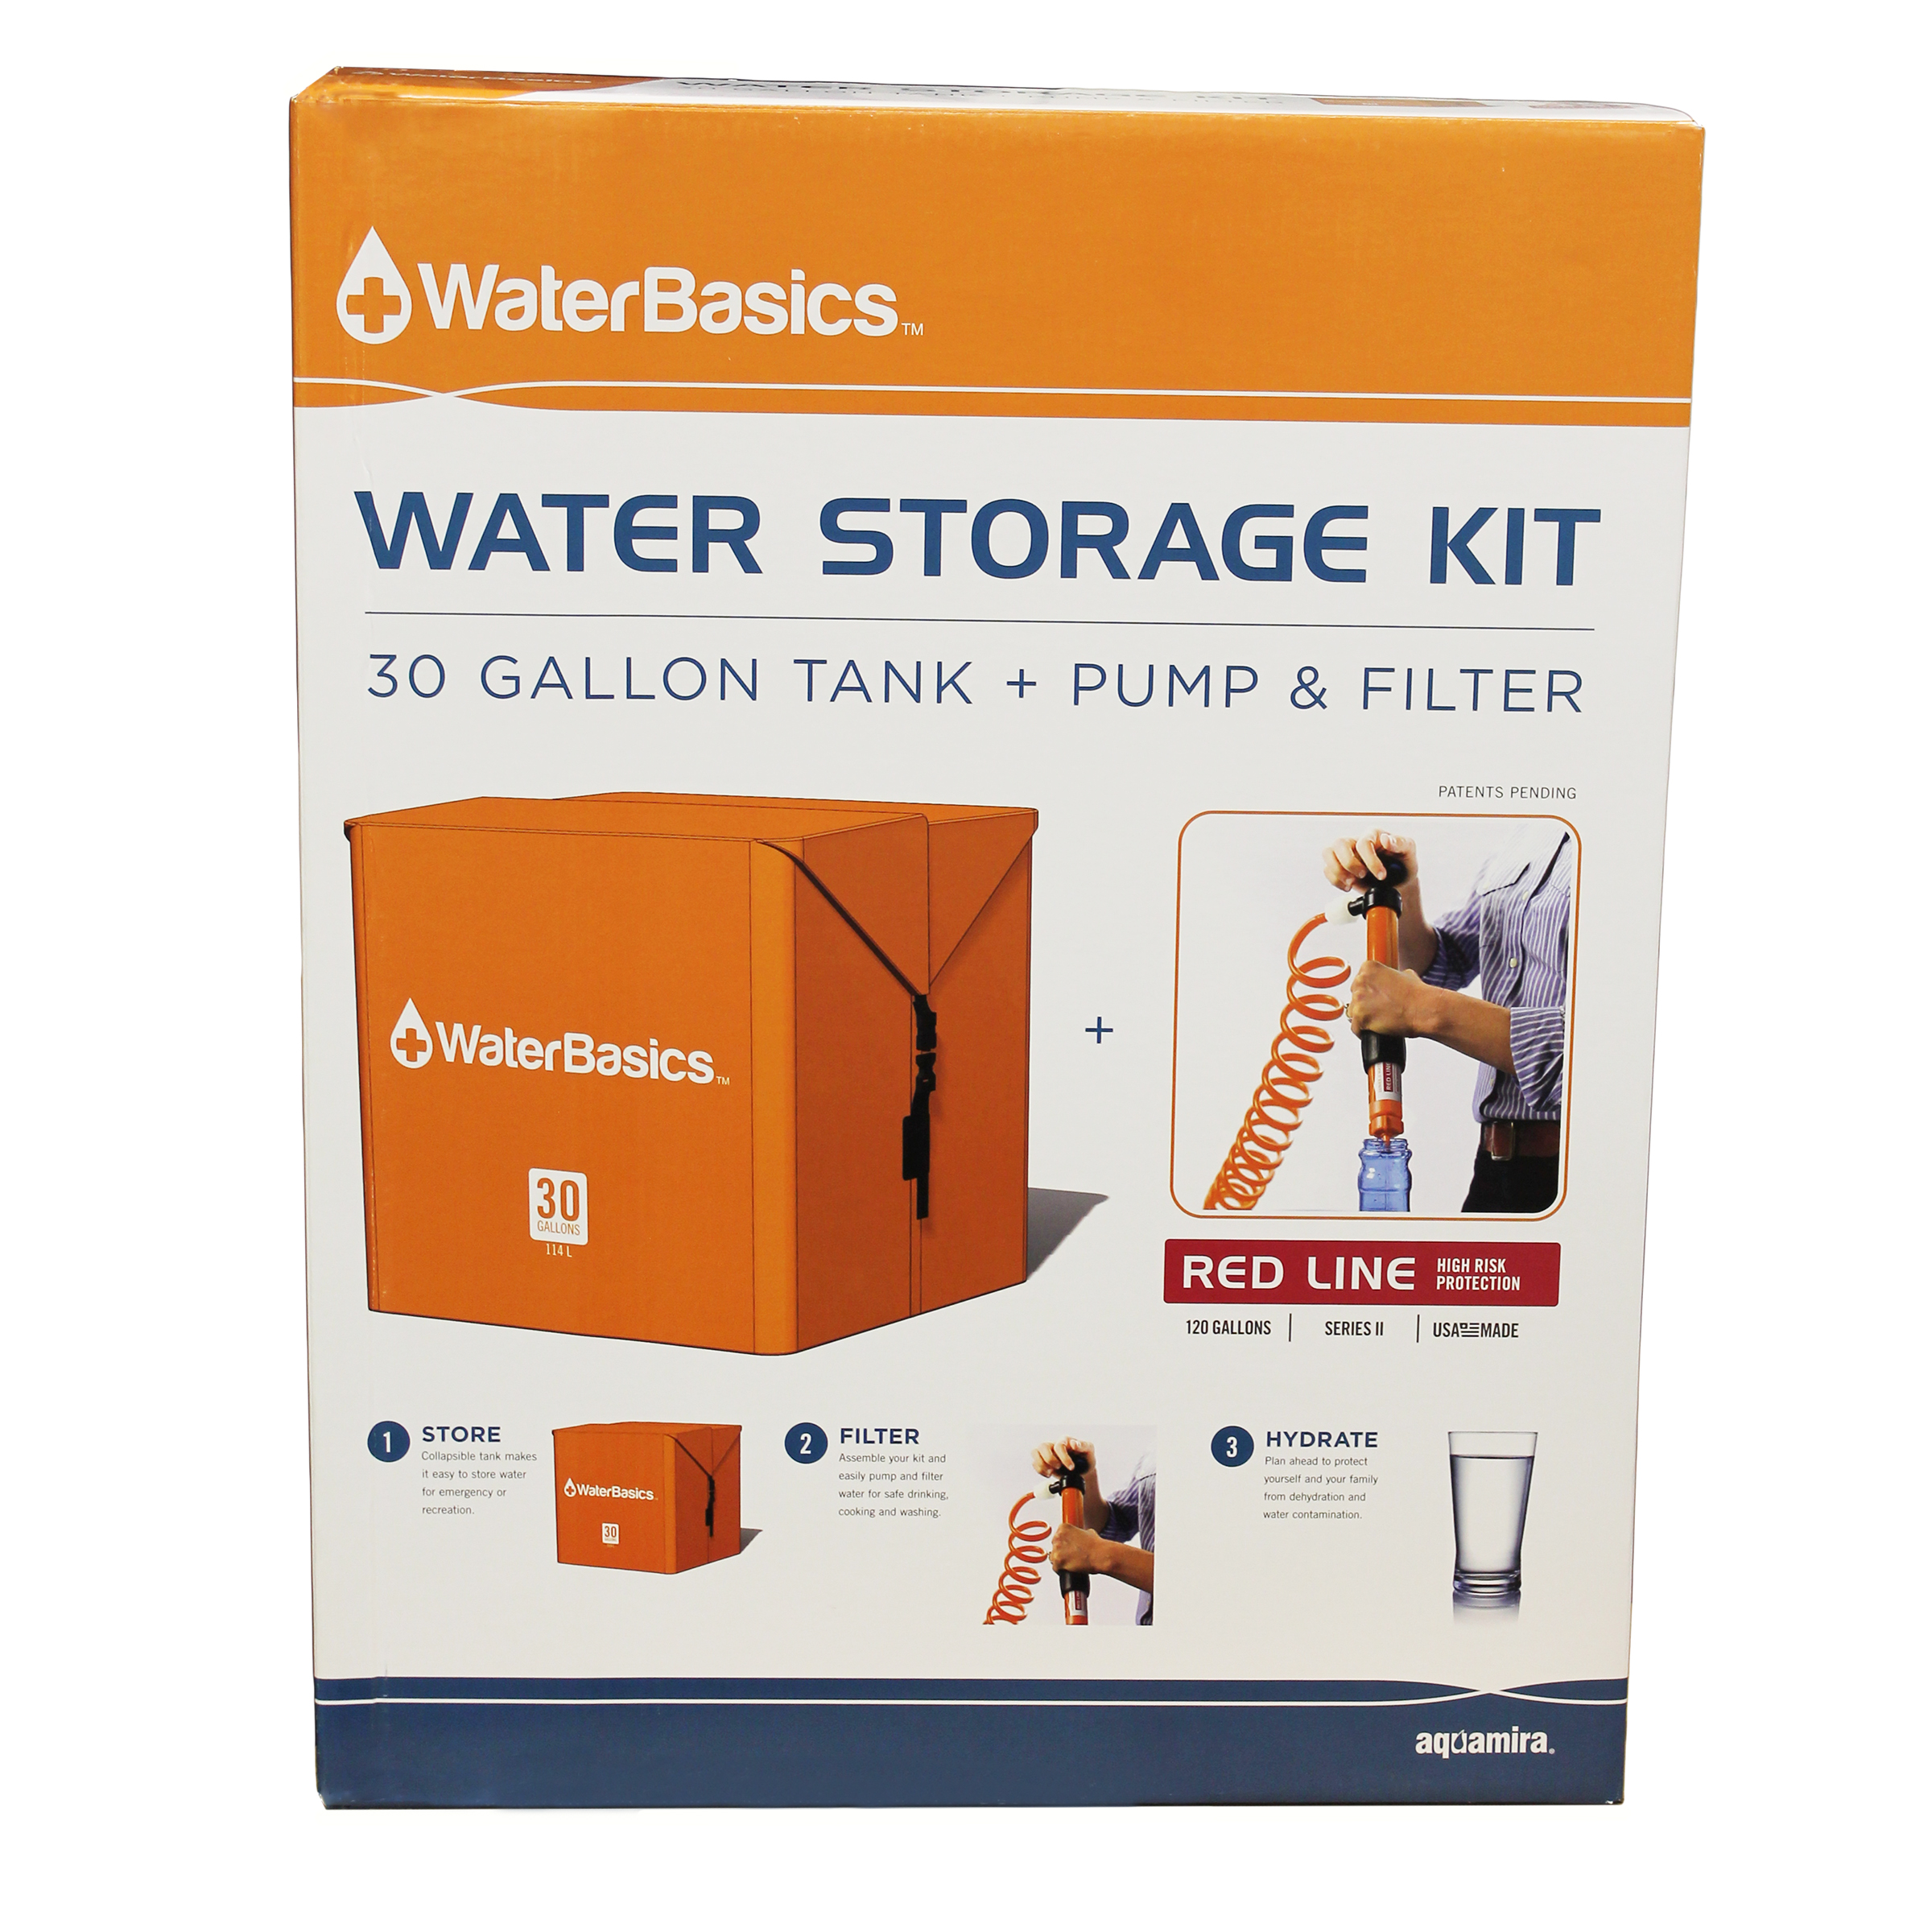 Aquamira WaterBasics Water Storage Kit 30 Gallons with Filter by Aquamira